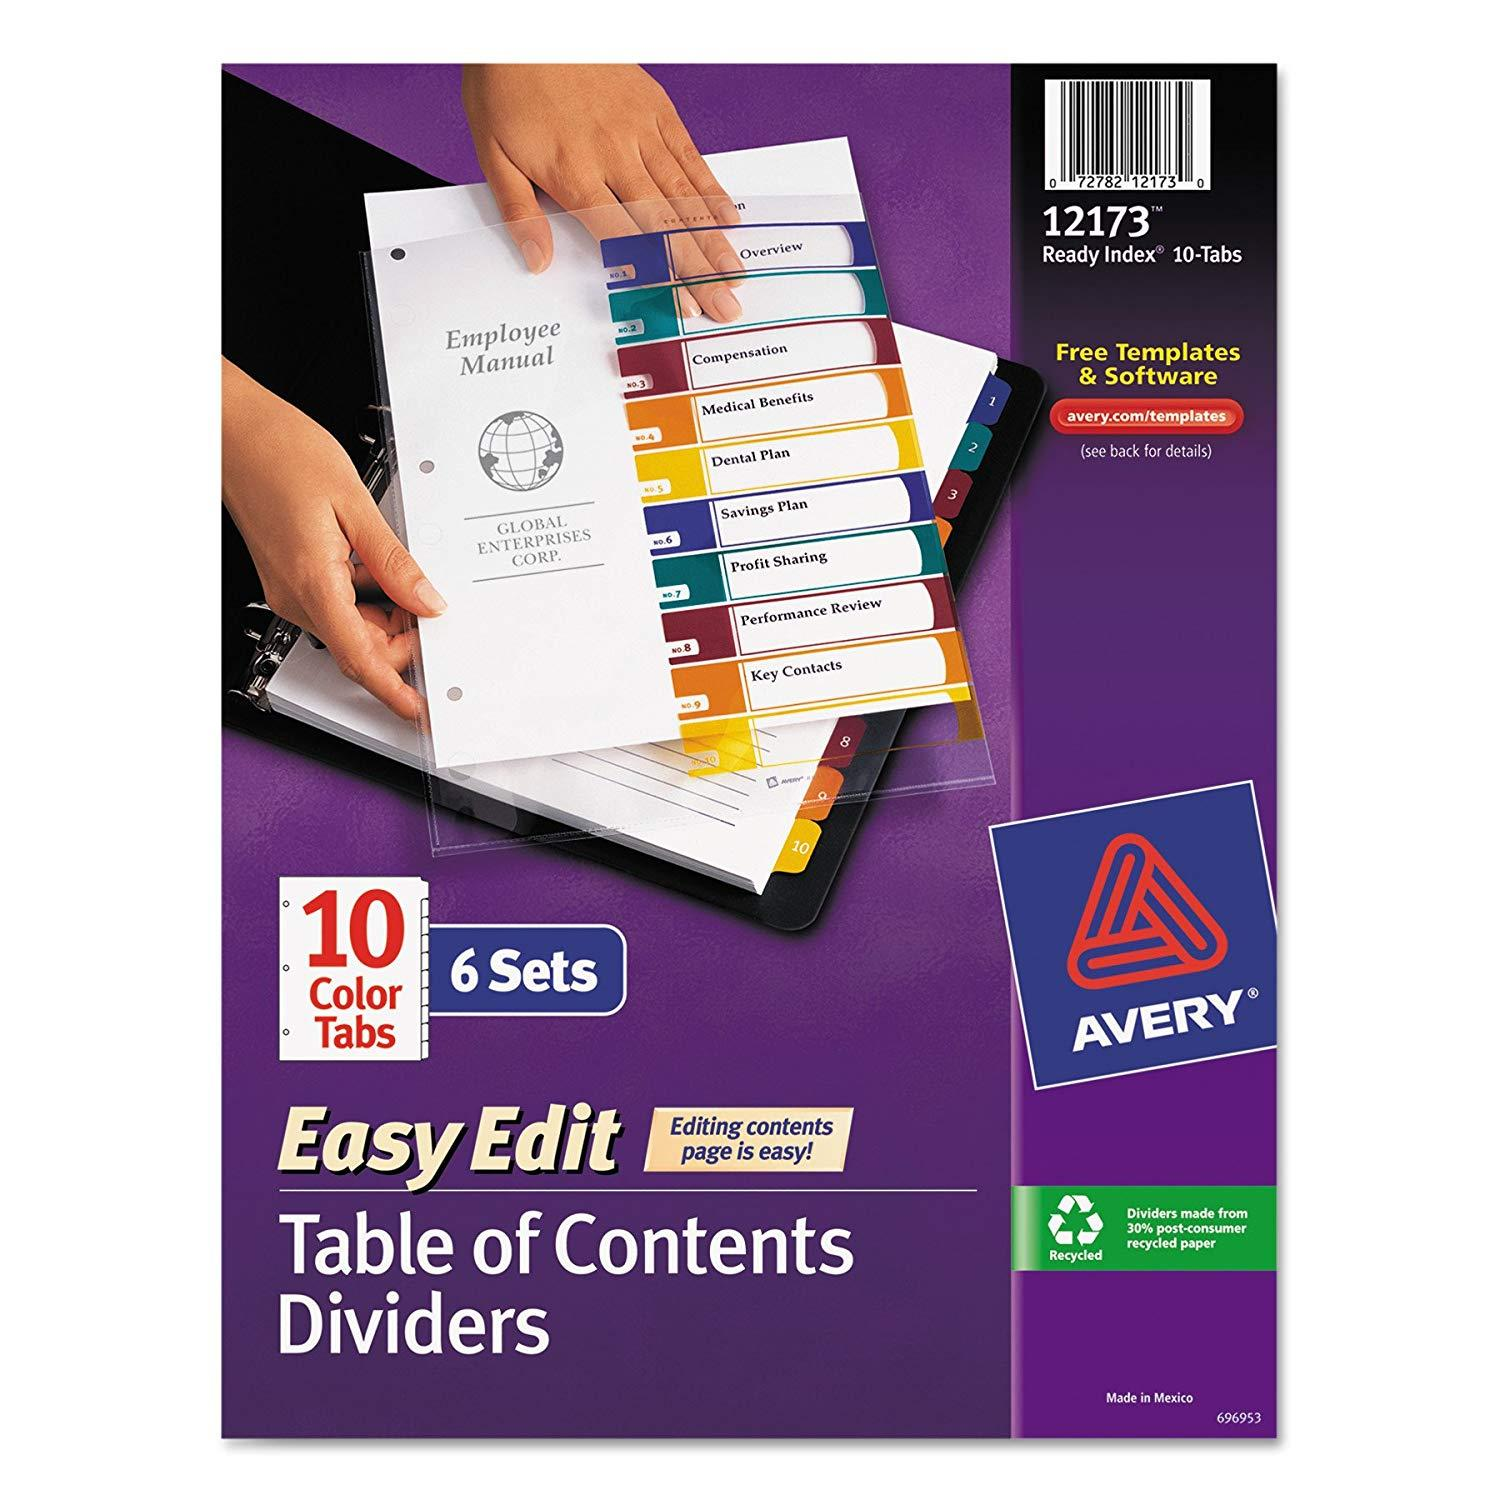 Avery Ready Index Template 10 Tab Color